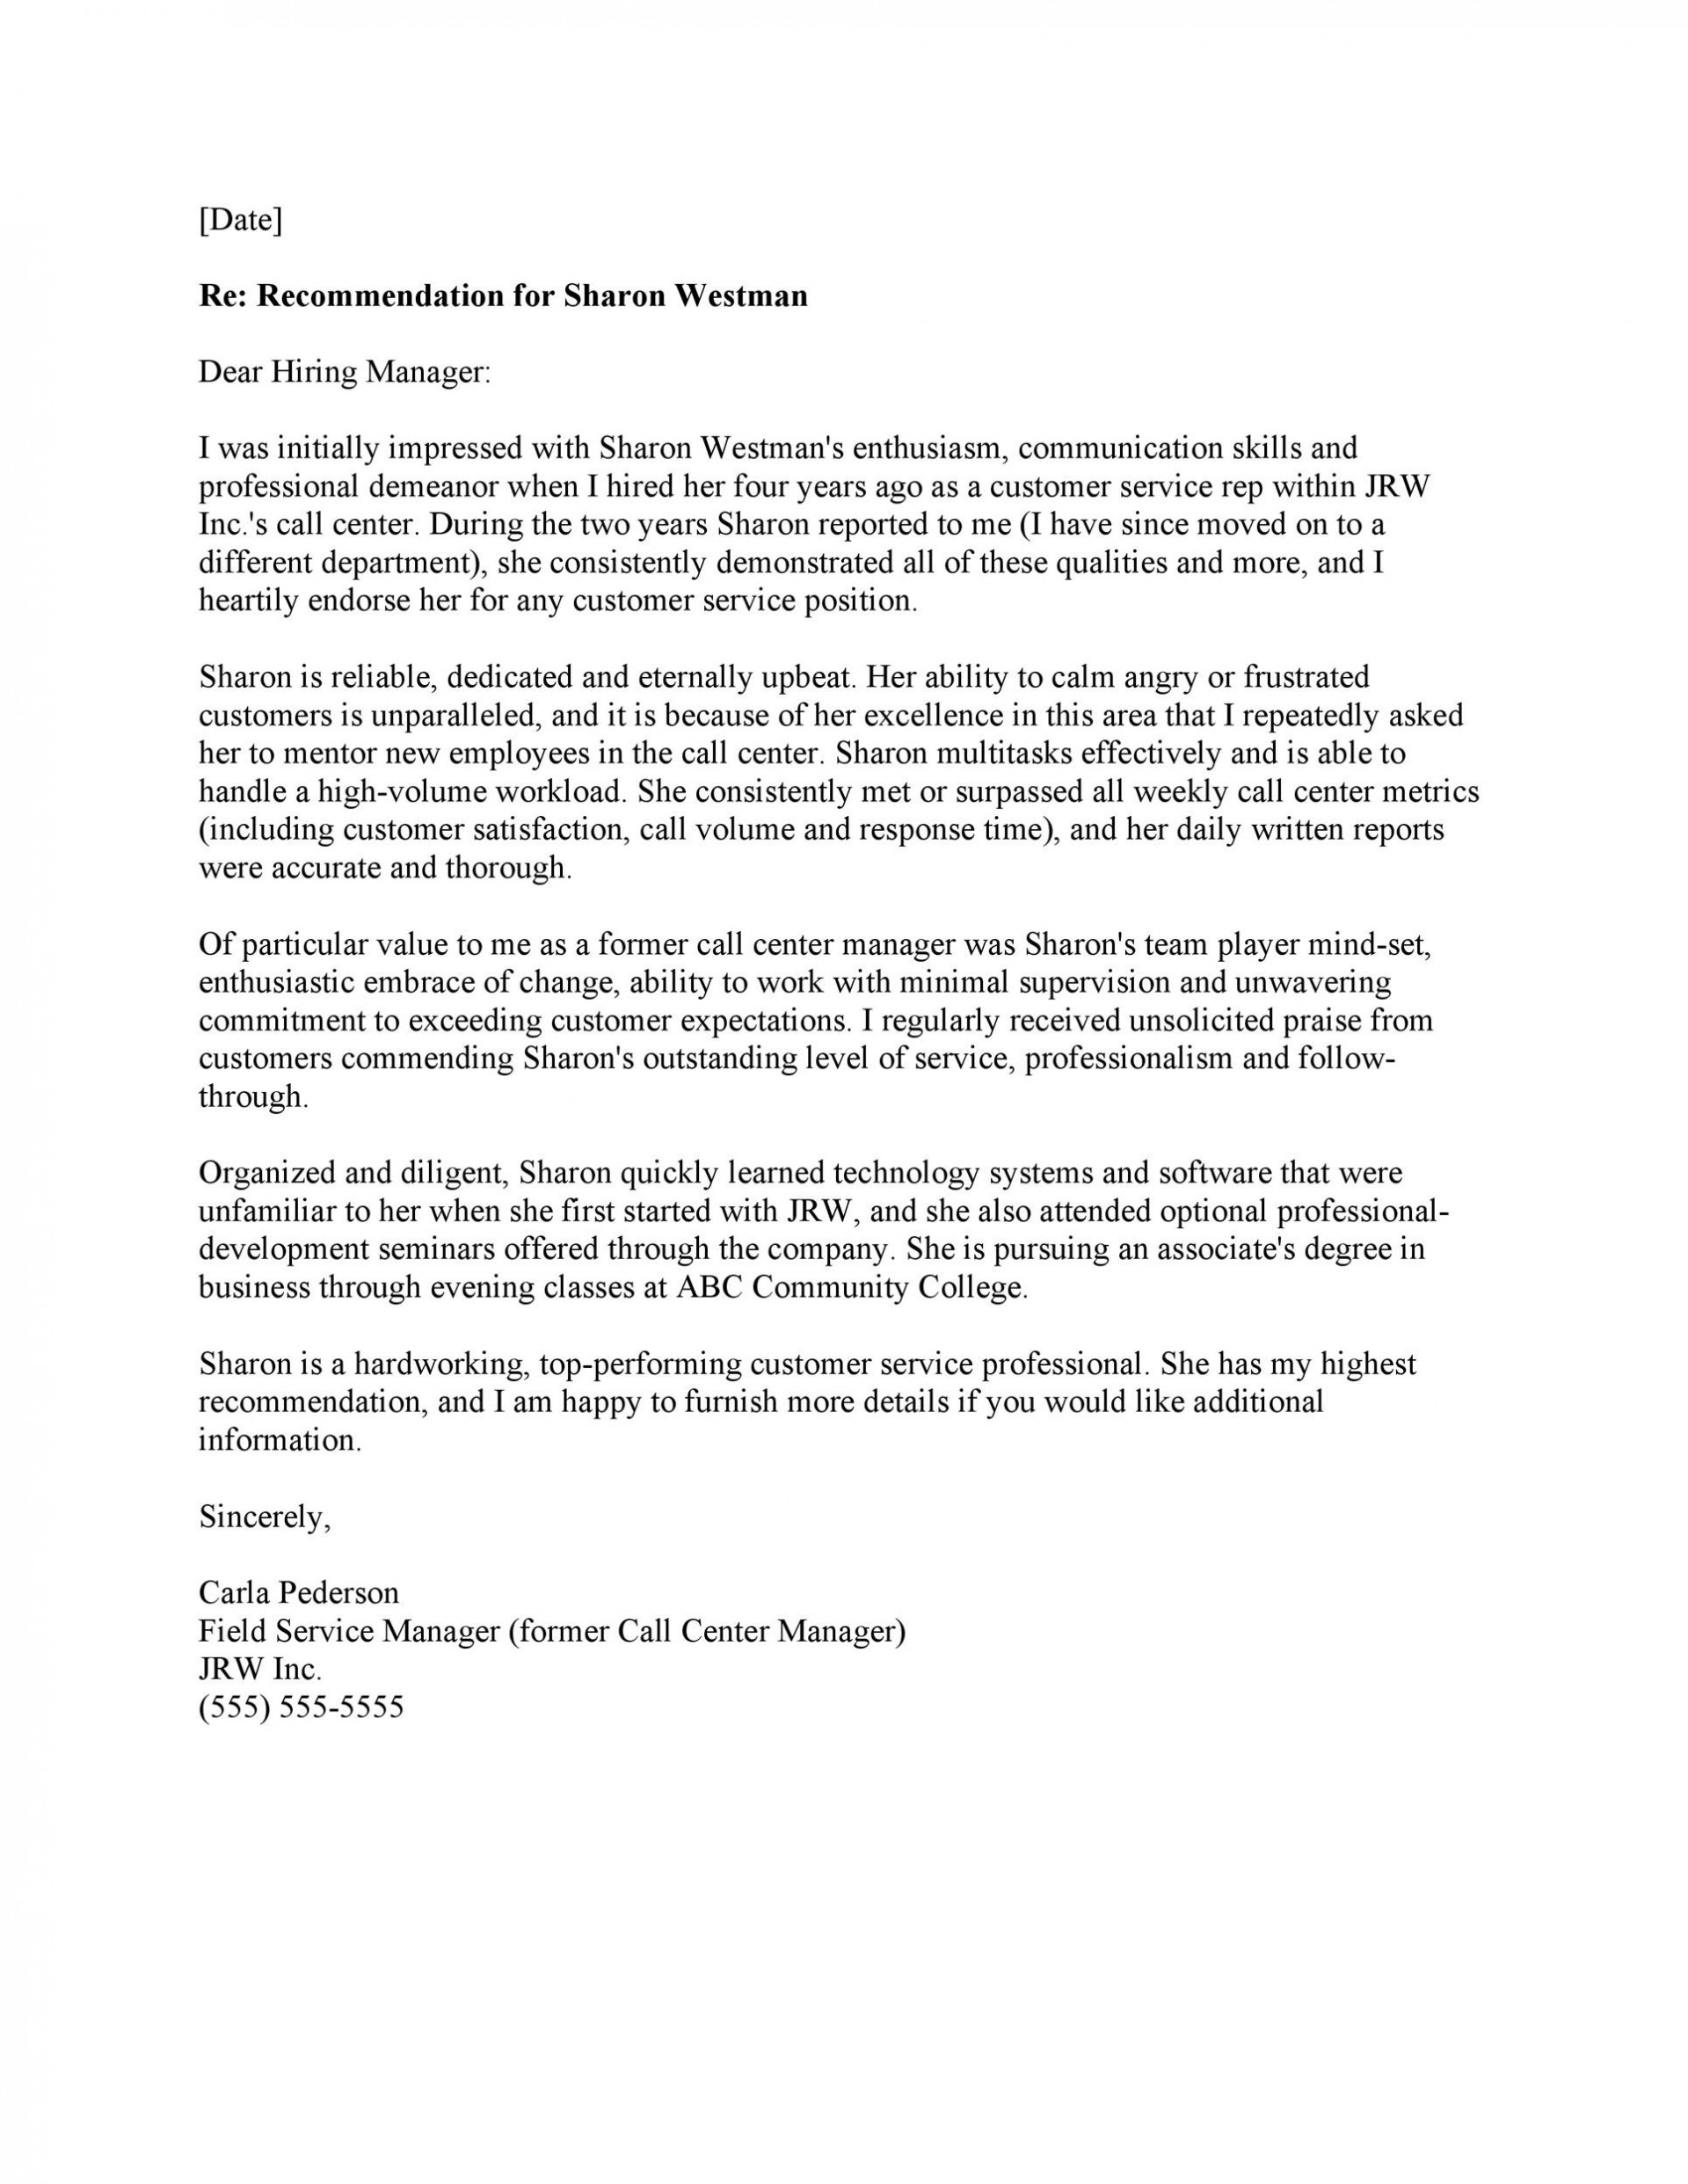 007 Fearsome Professional Reference Letter Template Inspiration  Nursing Free Character1920